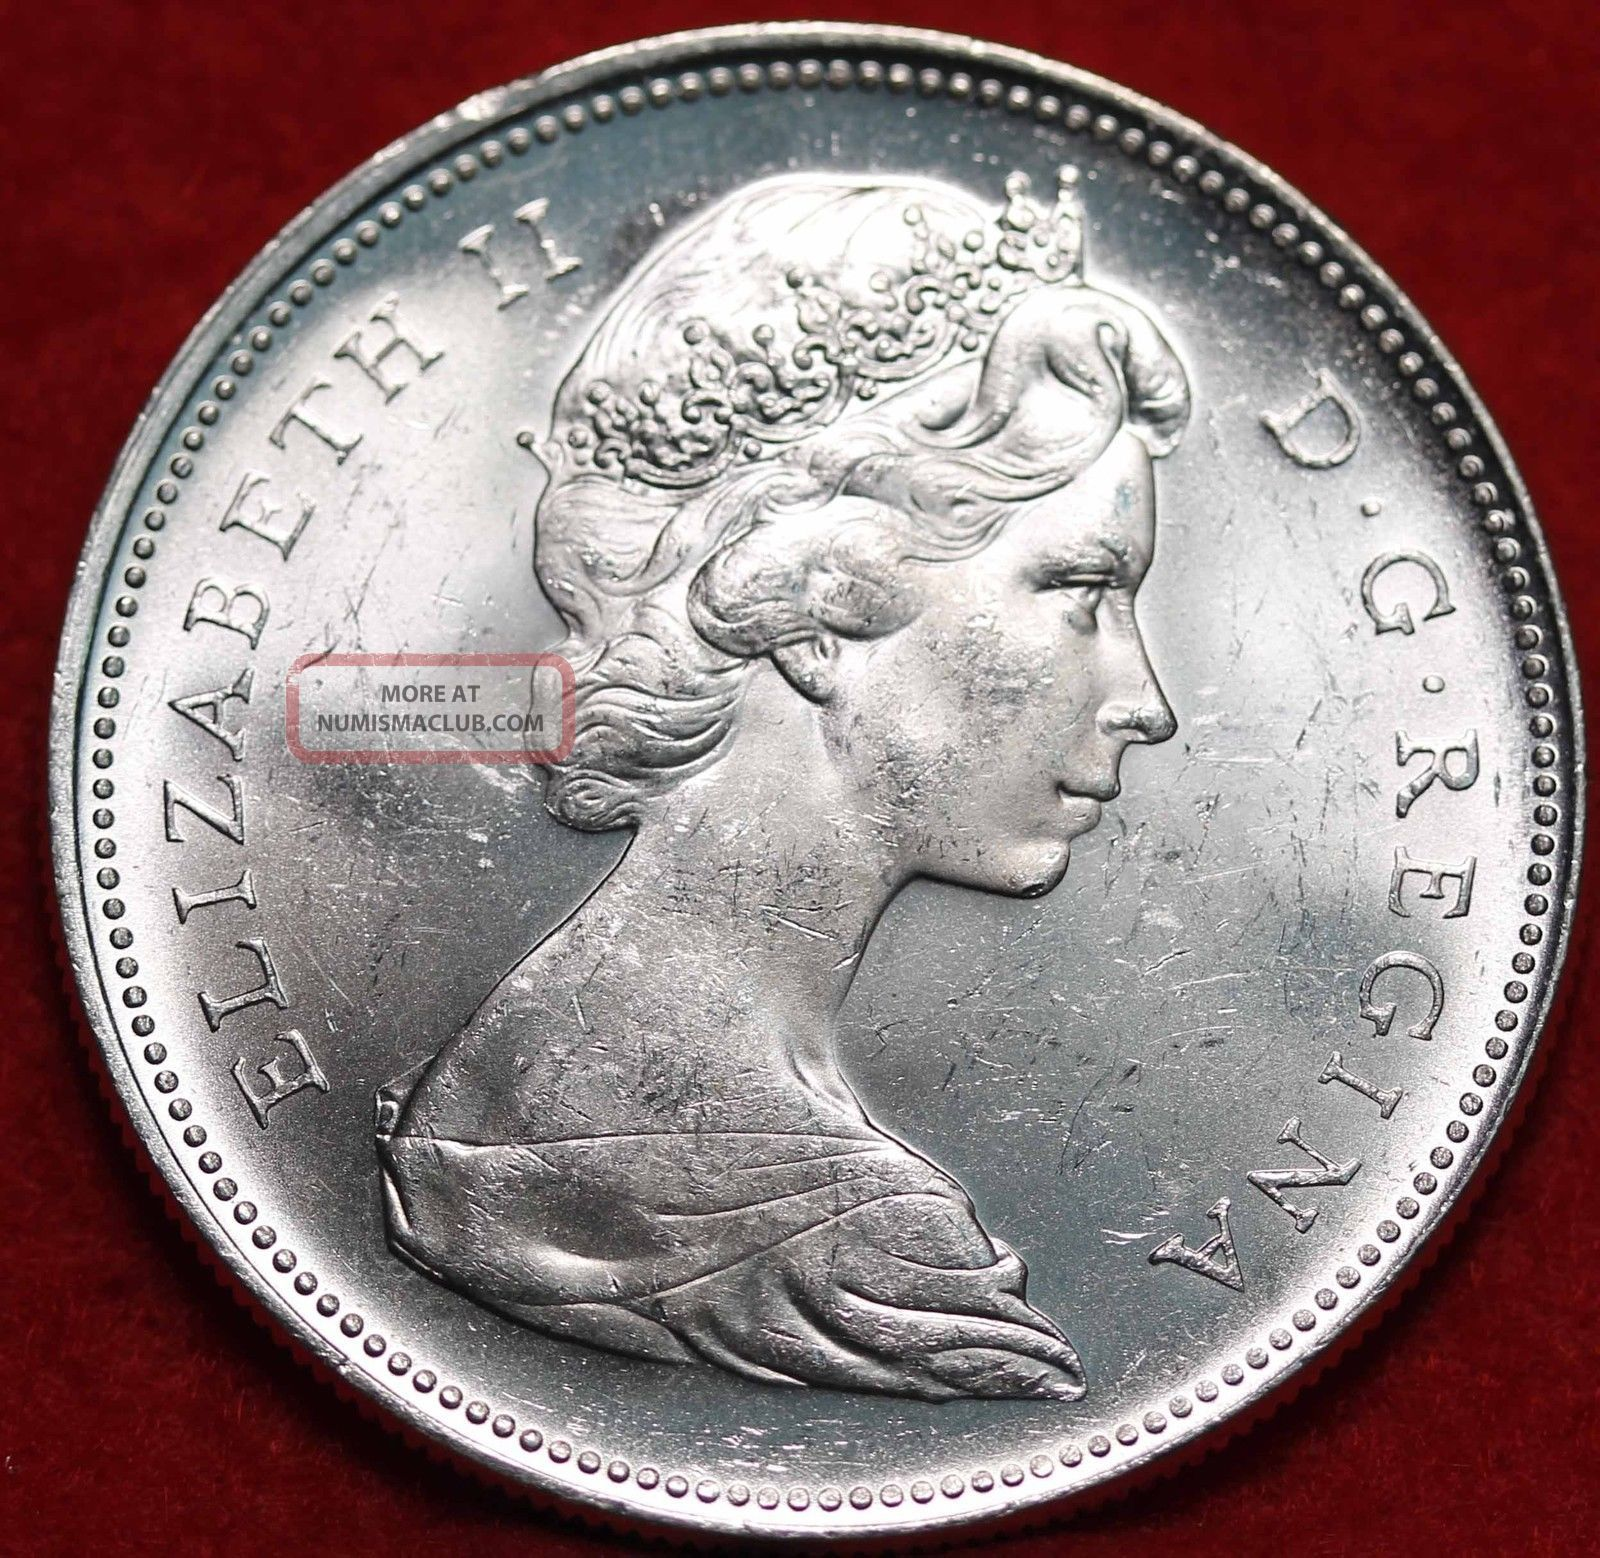 Uncirculated 1966 Canada Silver Dollar Foreign Coin S H